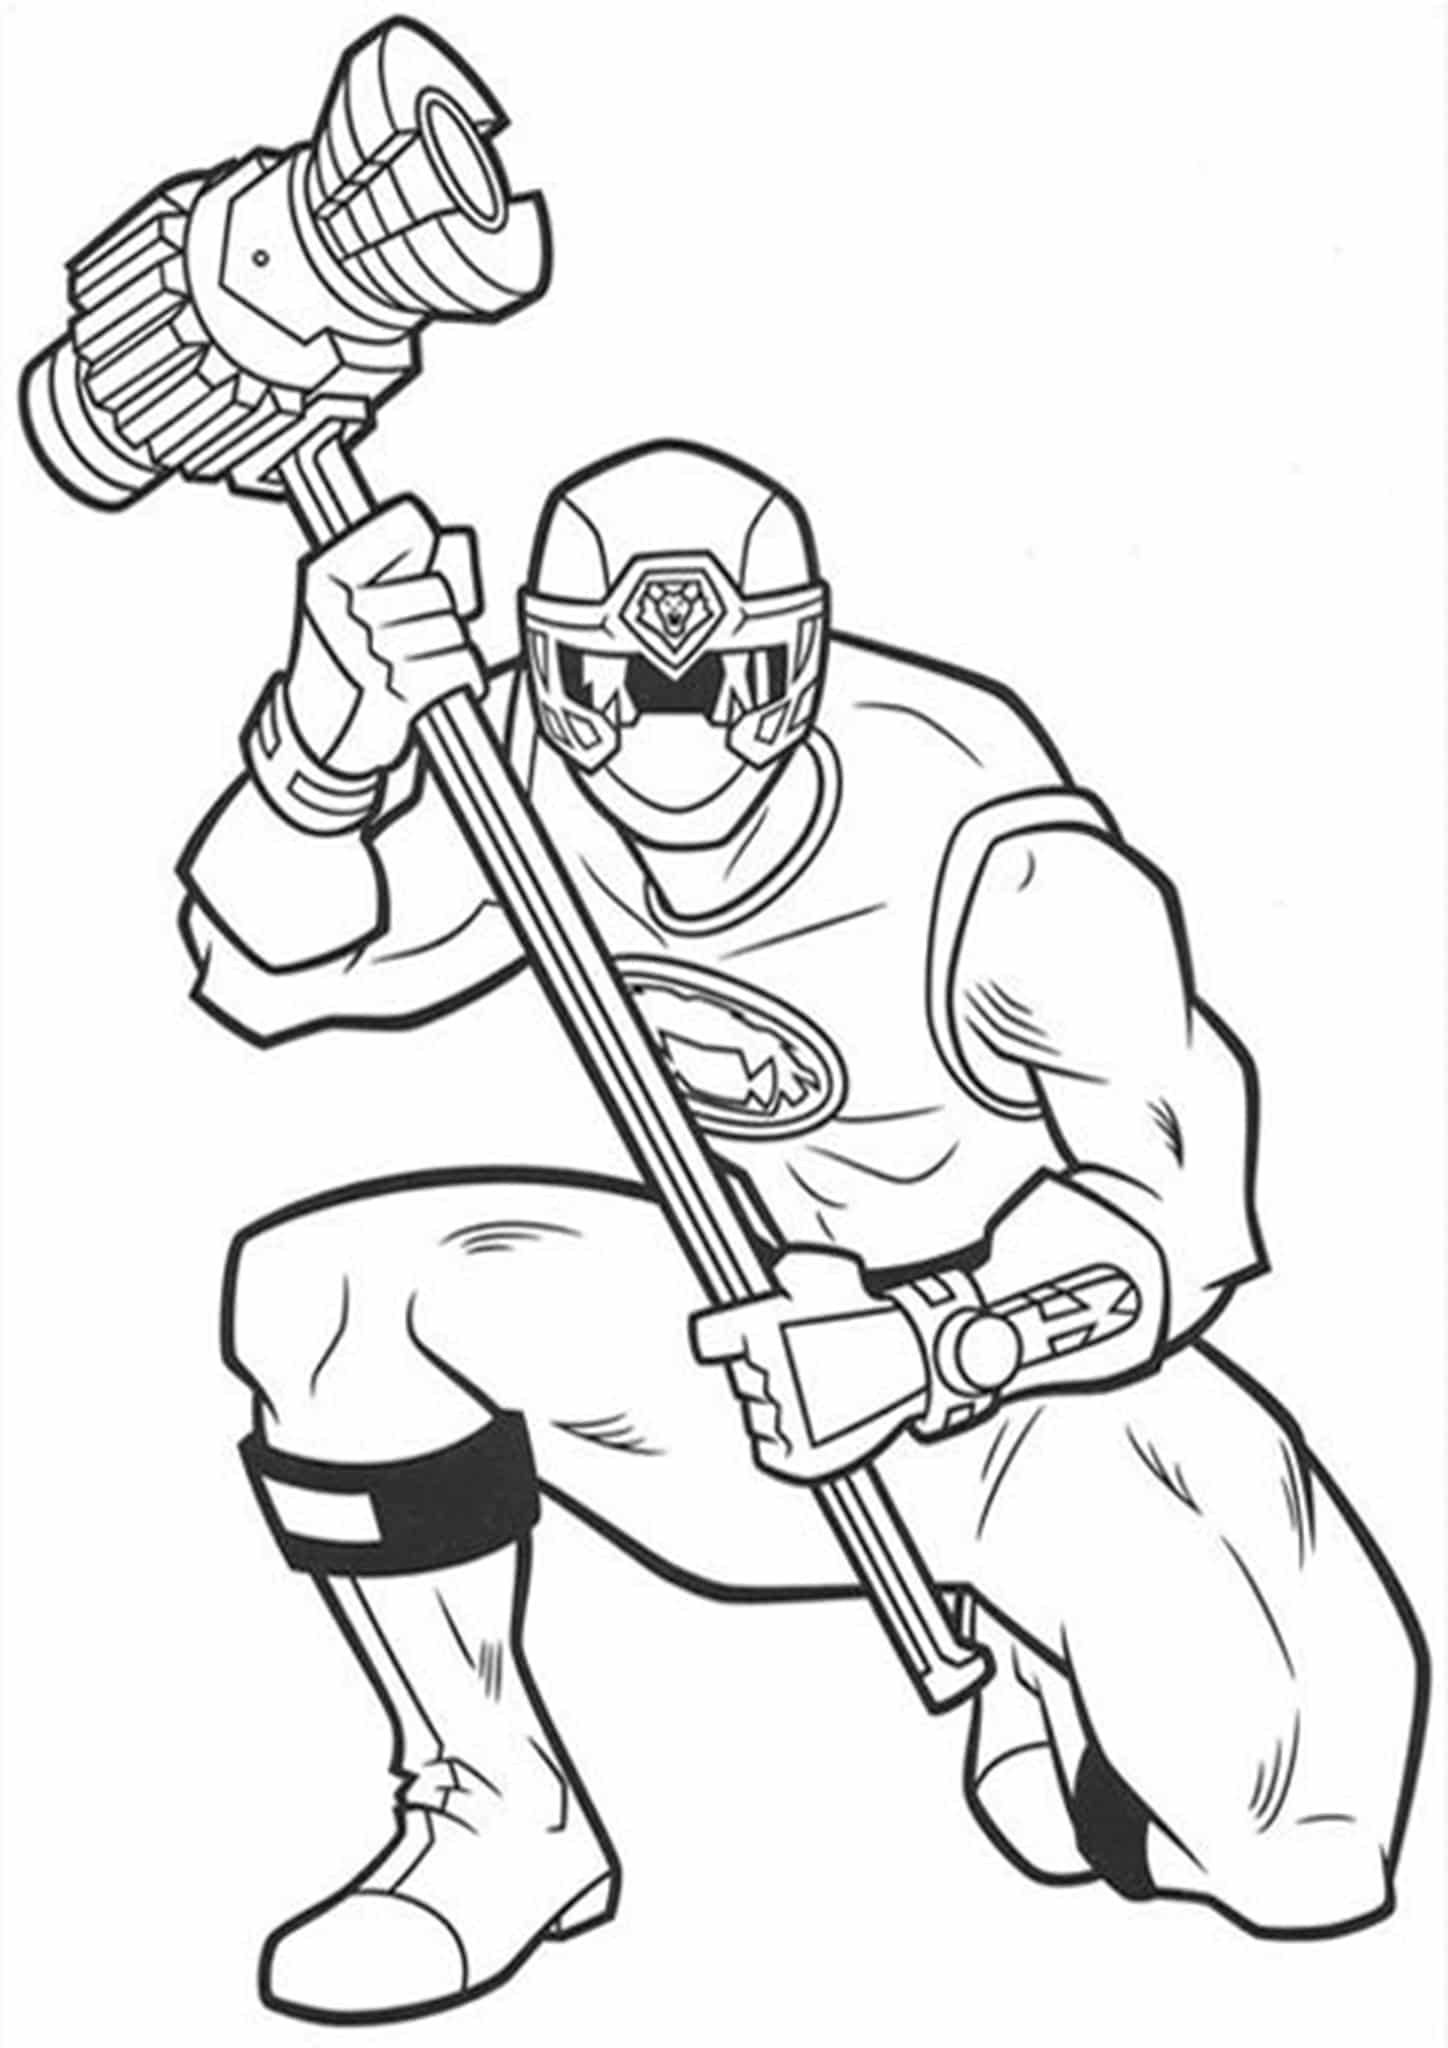 power ranger color pages power rangers samurai coloring pages color power pages ranger